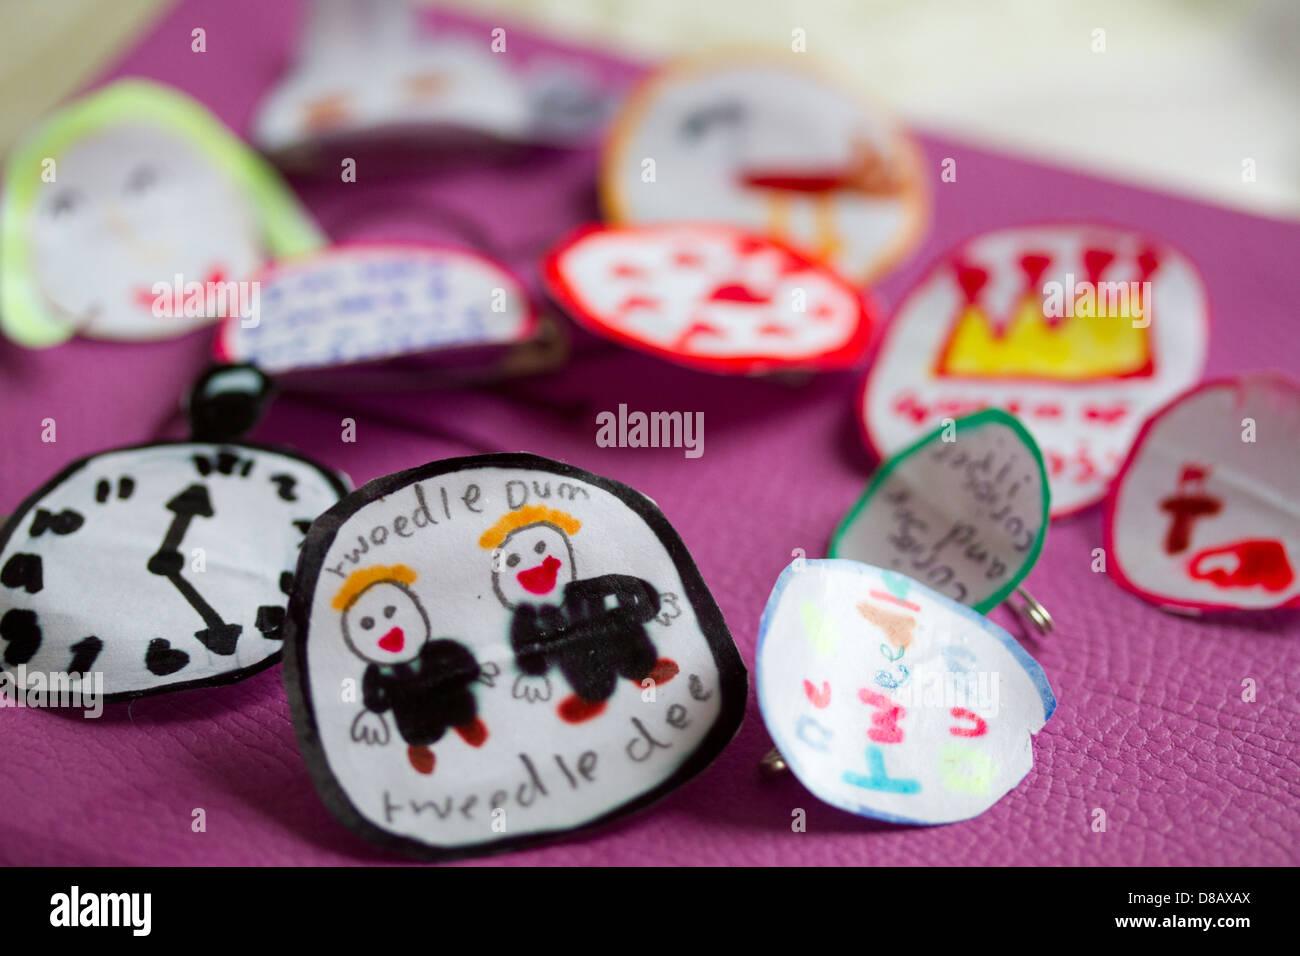 badges made by 7 to 8 year old child using, paper pens and glue, handmade at home - Stock Image